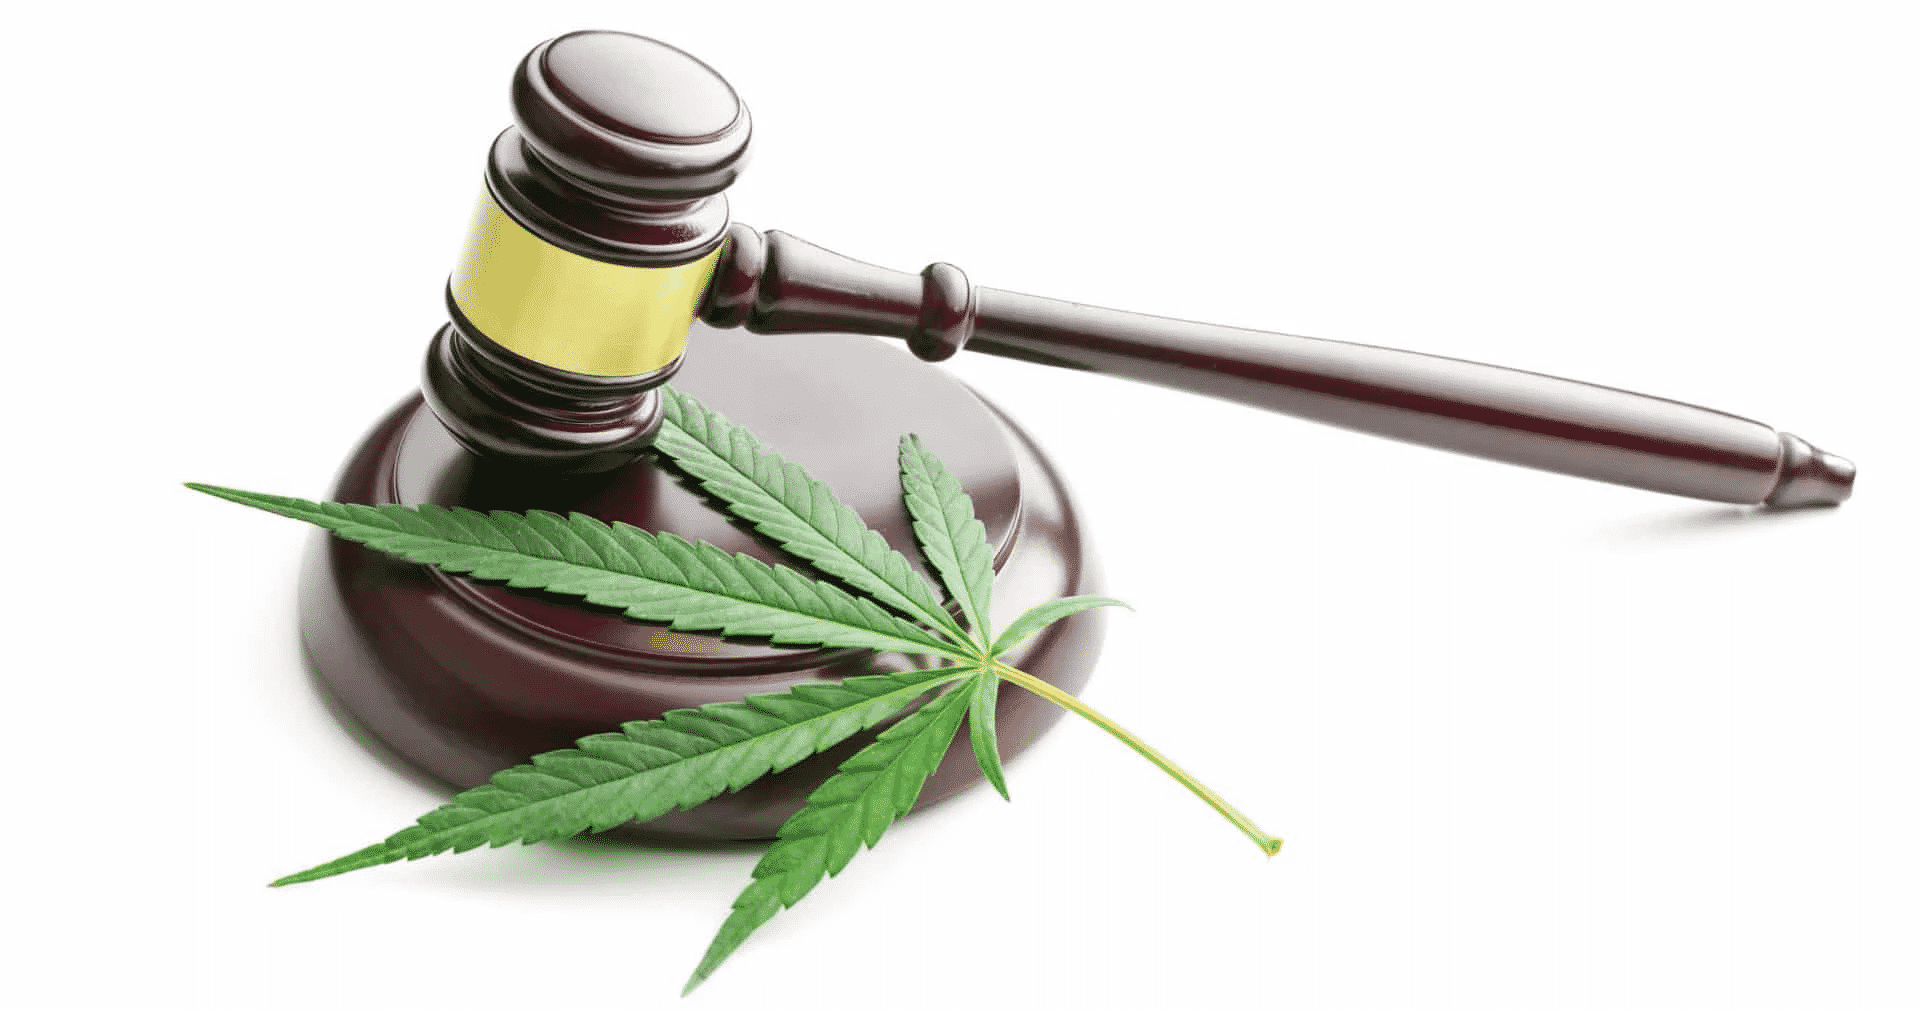 Legislation Act of Cannabis